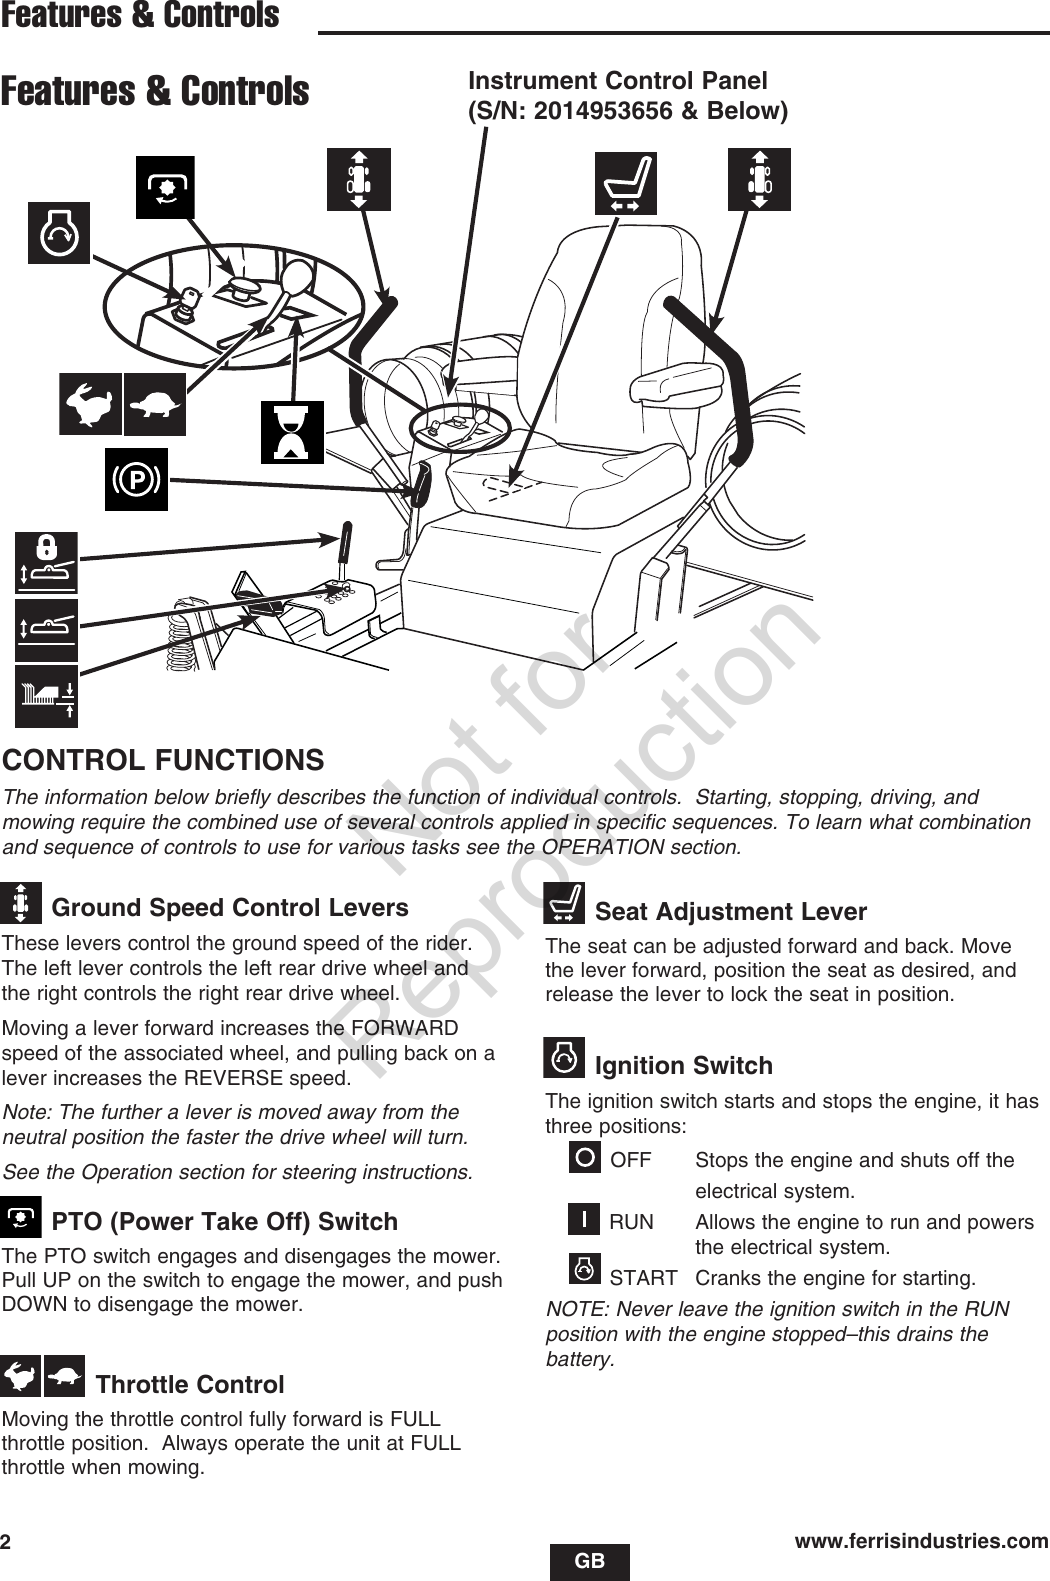 Ferris Industries Lawn Mower 5900789 Users Manual 5404081 U Seat Switch Wiring Diagram 2ferrisindustriescomgbcontrol Functionsthe Information Below Briefly Describes The Function Of Individual Controls